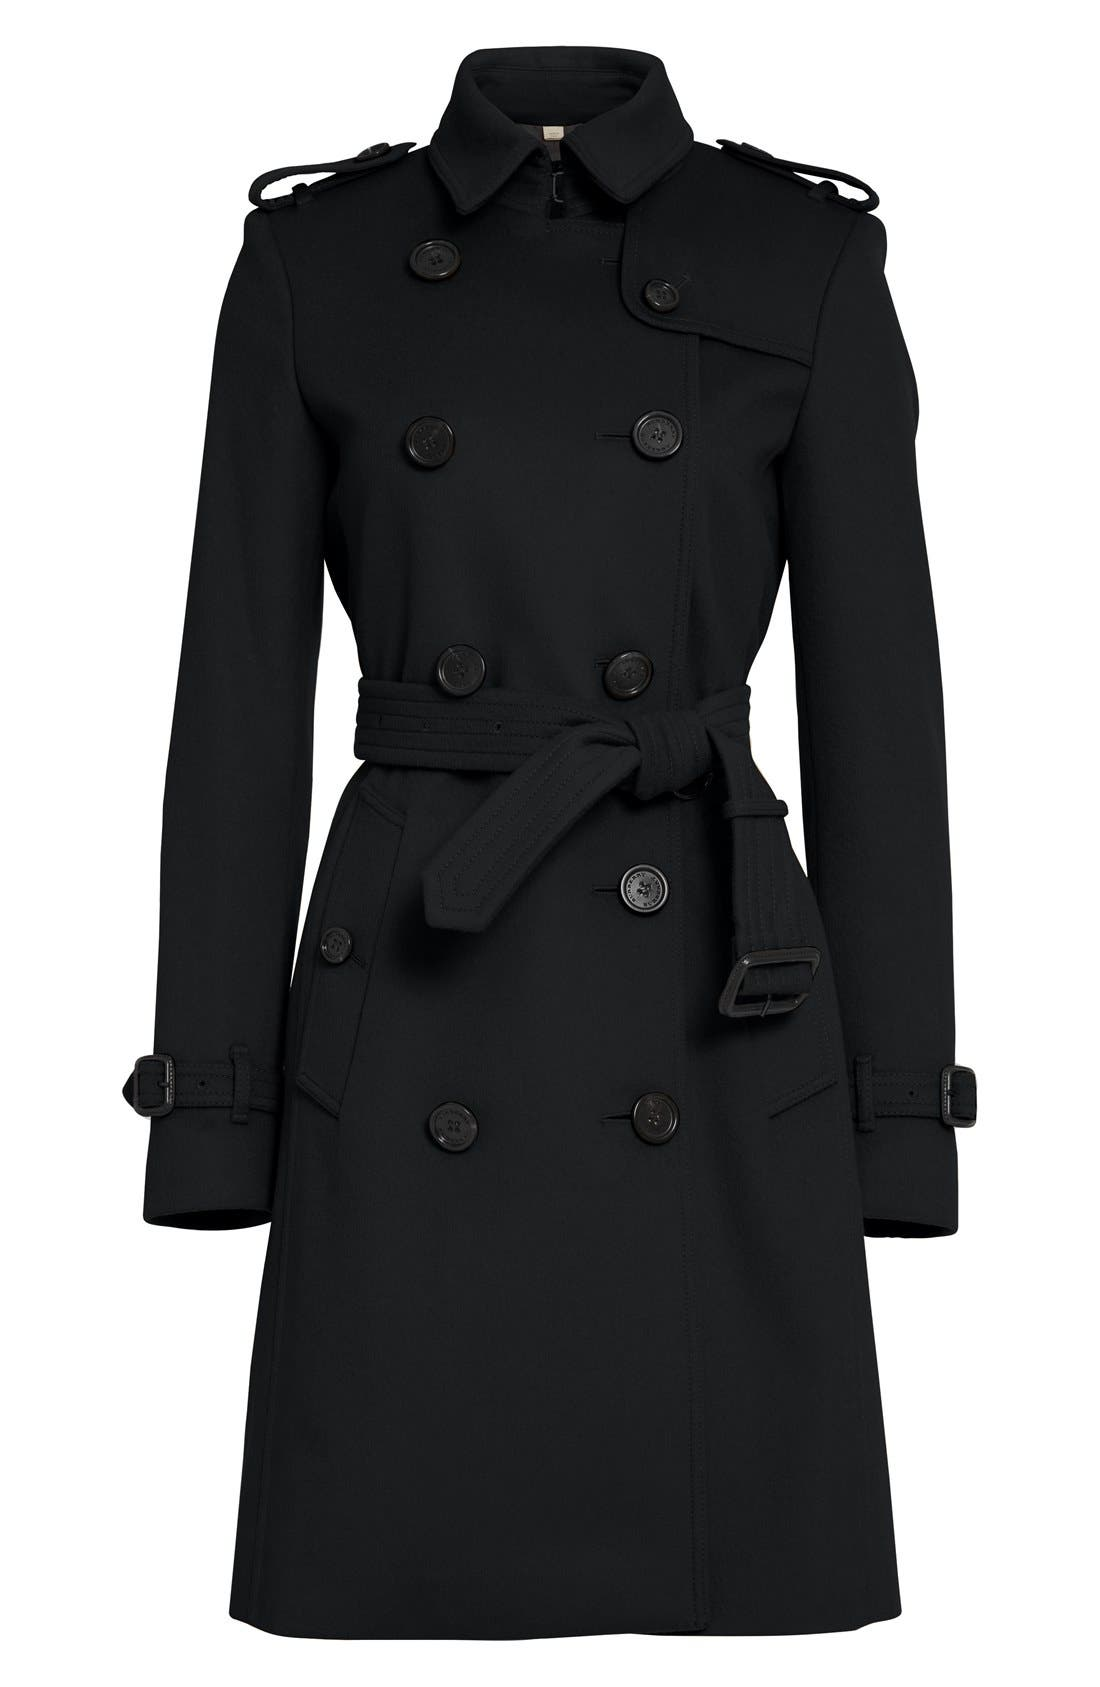 Kensington Double Breasted Wool & Cashmere Trench Coat,                             Alternate thumbnail 3, color,                             001